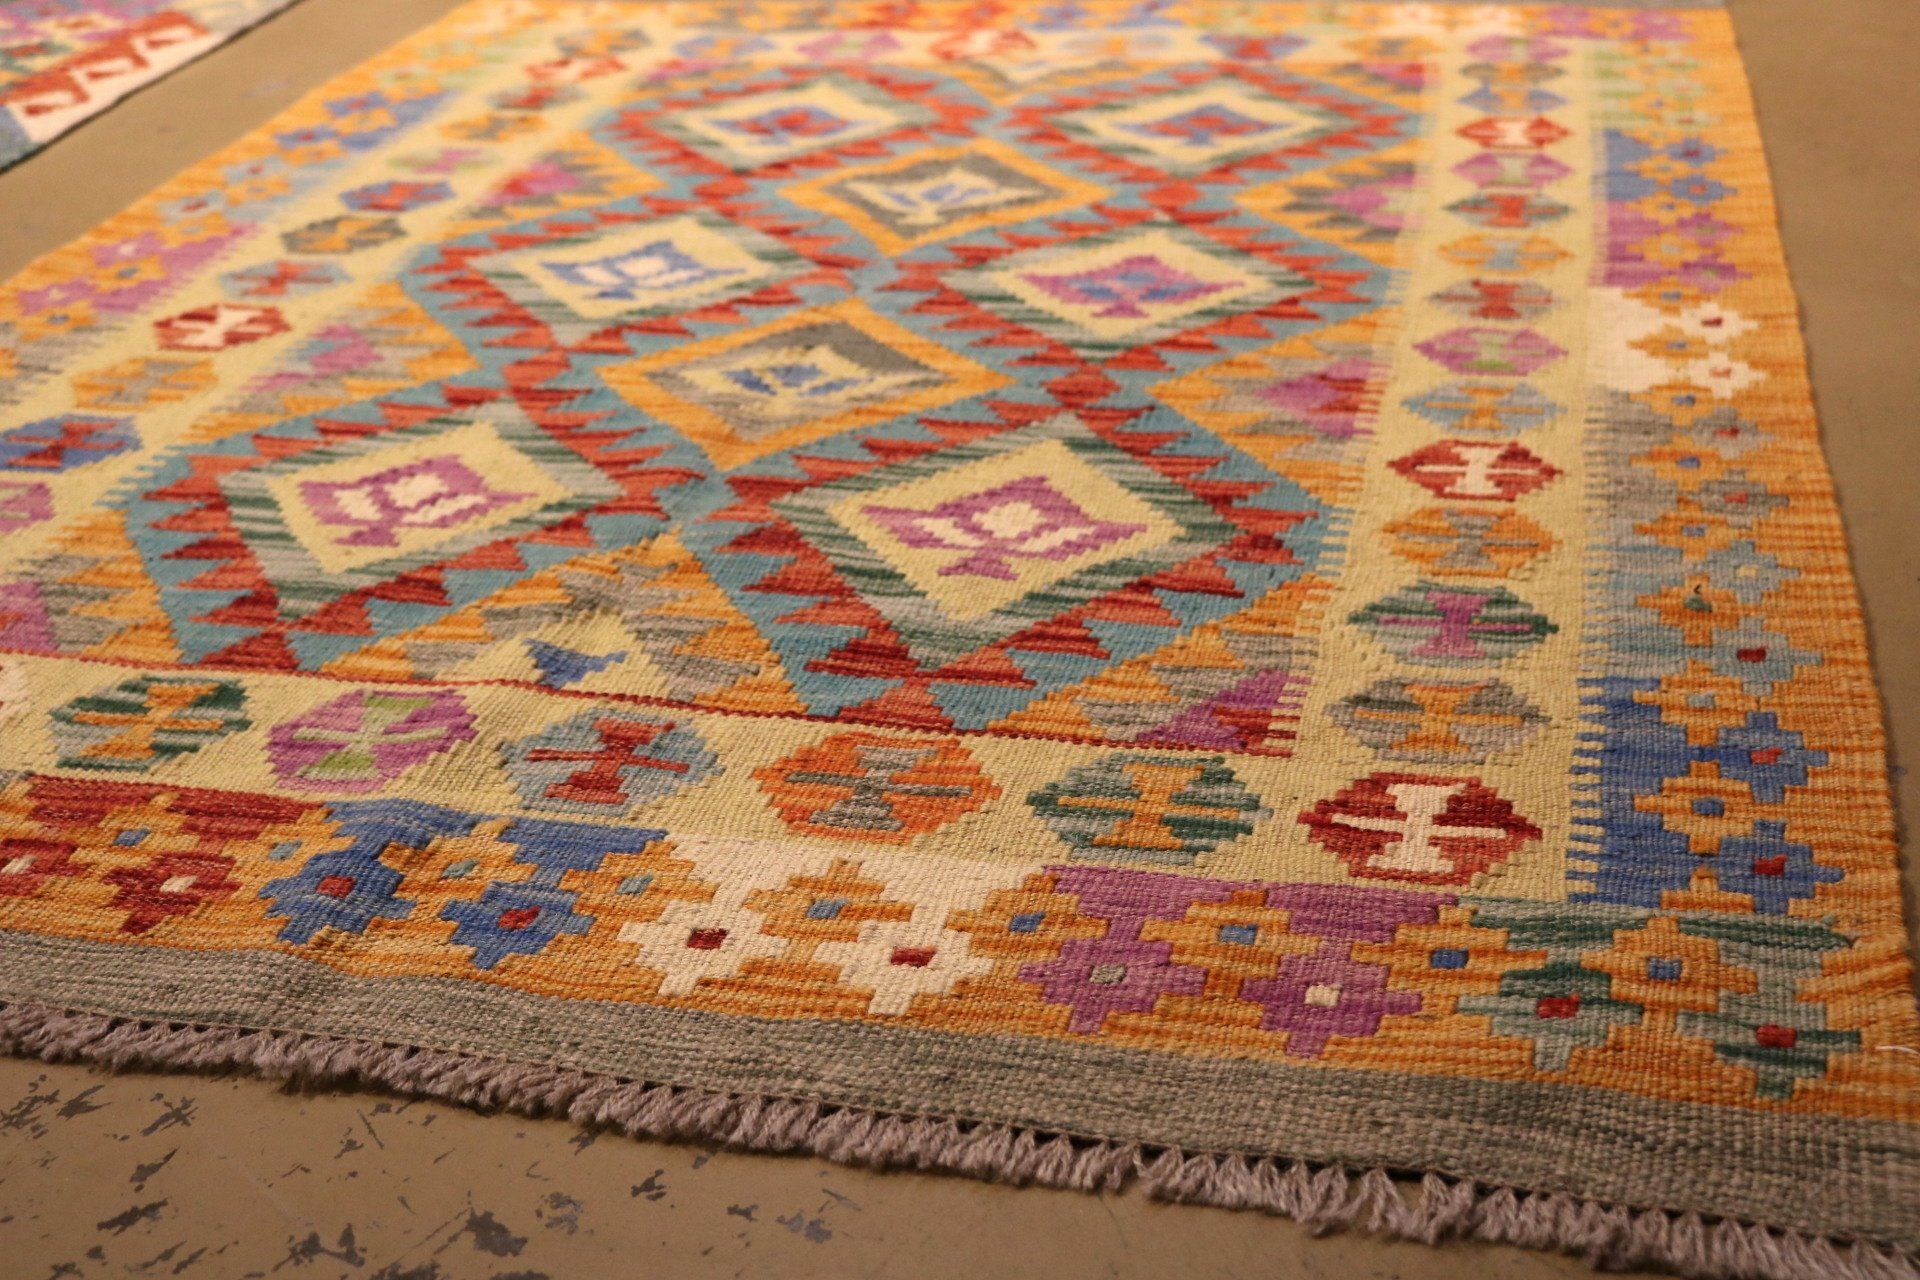 Pin By Laura Biber On House In 2020 Rug Gallery Rugs Rug Design